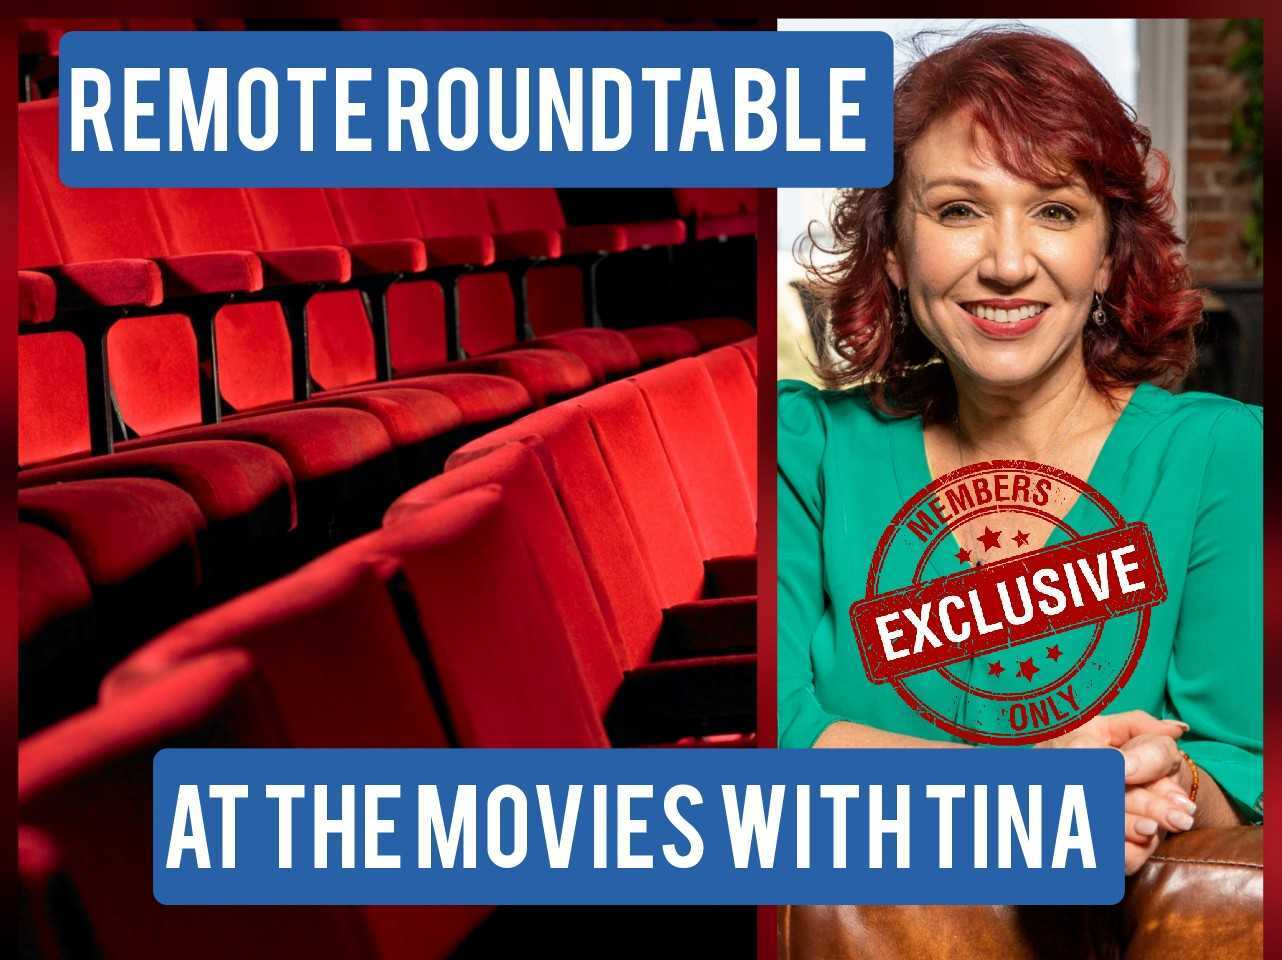 Remote Roundtable - Movies